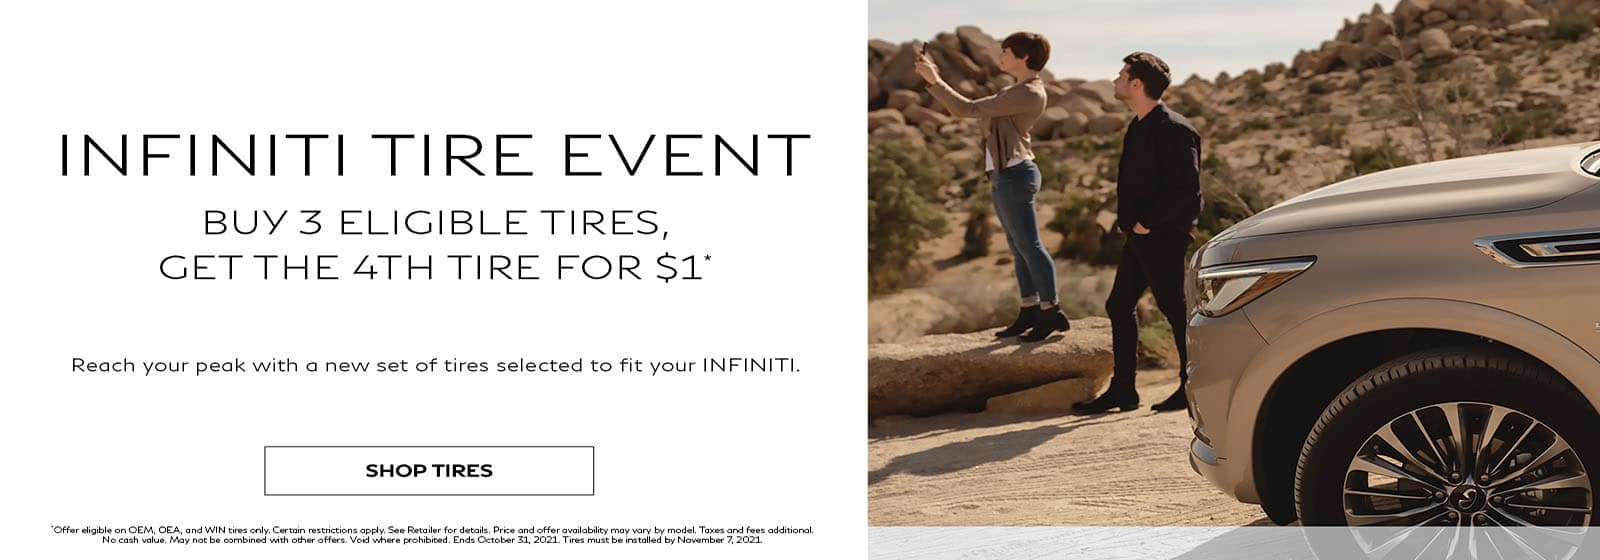 INFINITI Tire Event Buy 3 Eligible Tires, Get 4th for $1